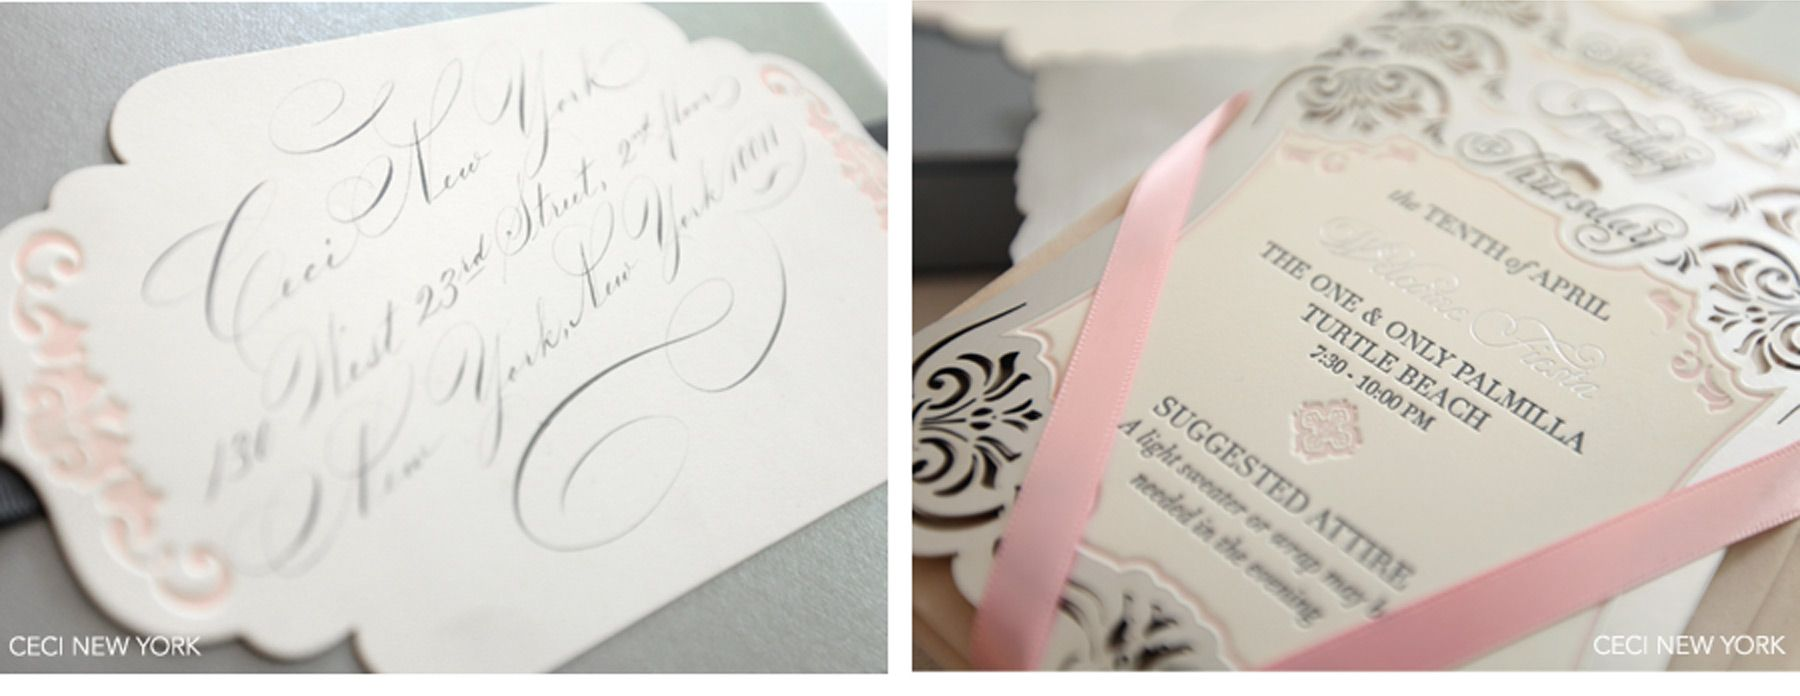 beach wedding invitation examples%0A Luxury Wedding Invitations by Ceci New York  Features hand calligraphy   letterpress printing  ribbons